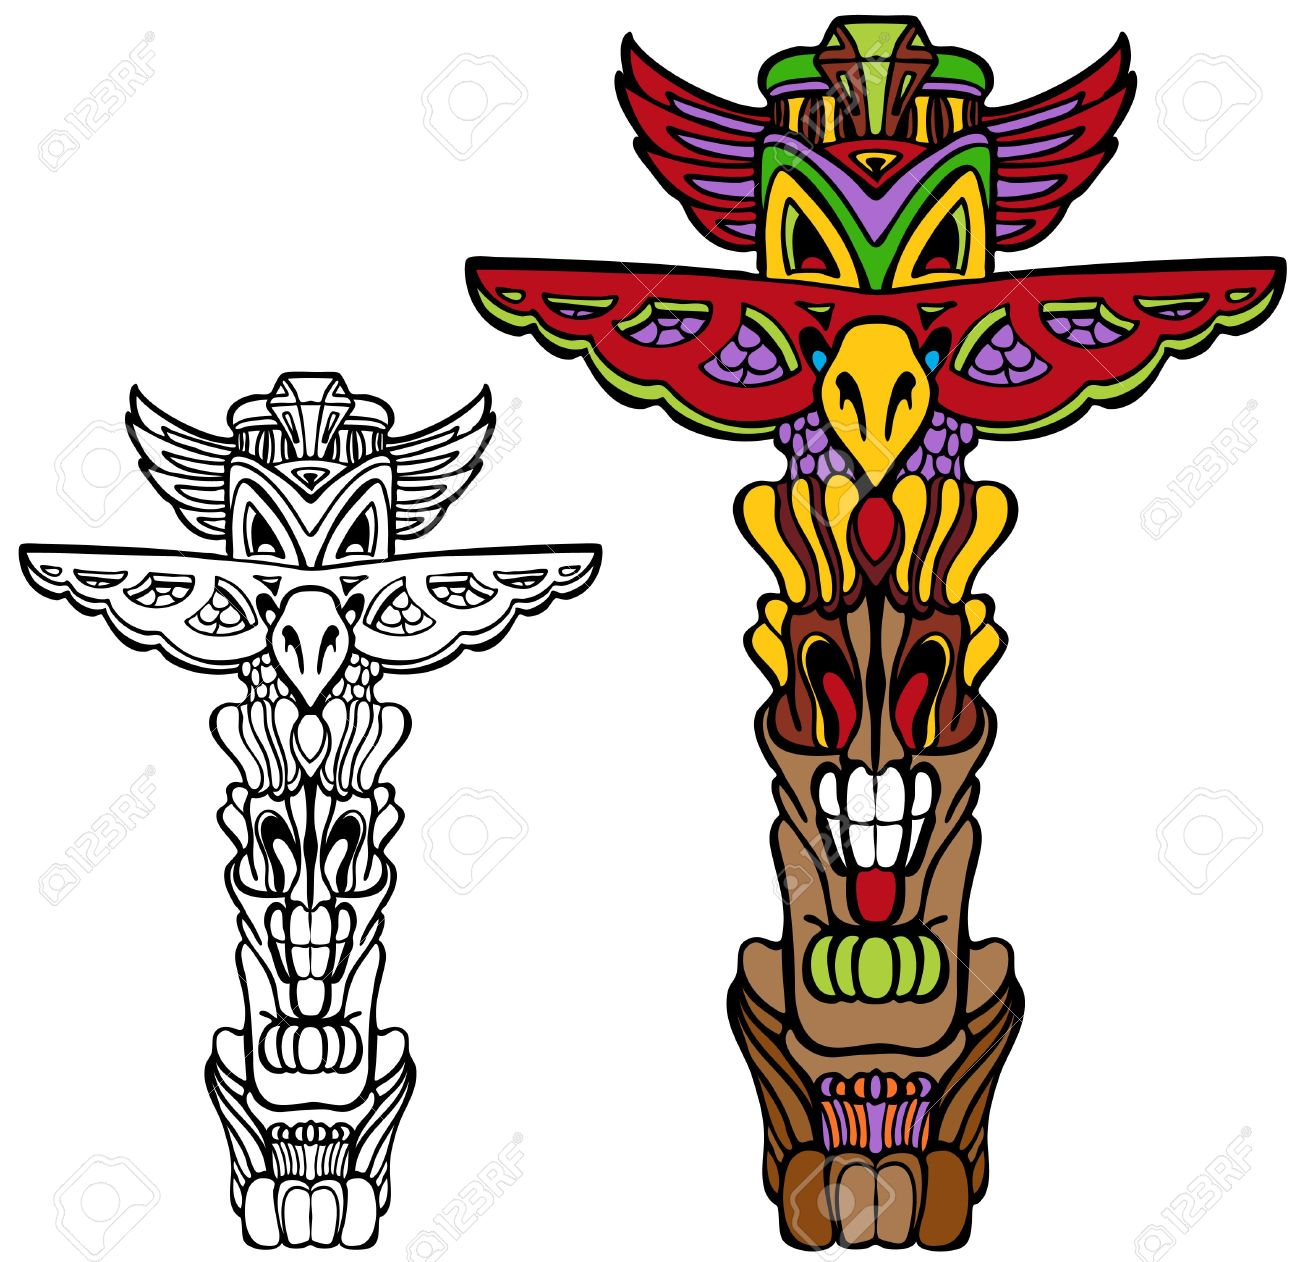 349 indian totem pole stock vector illustration and royalty free